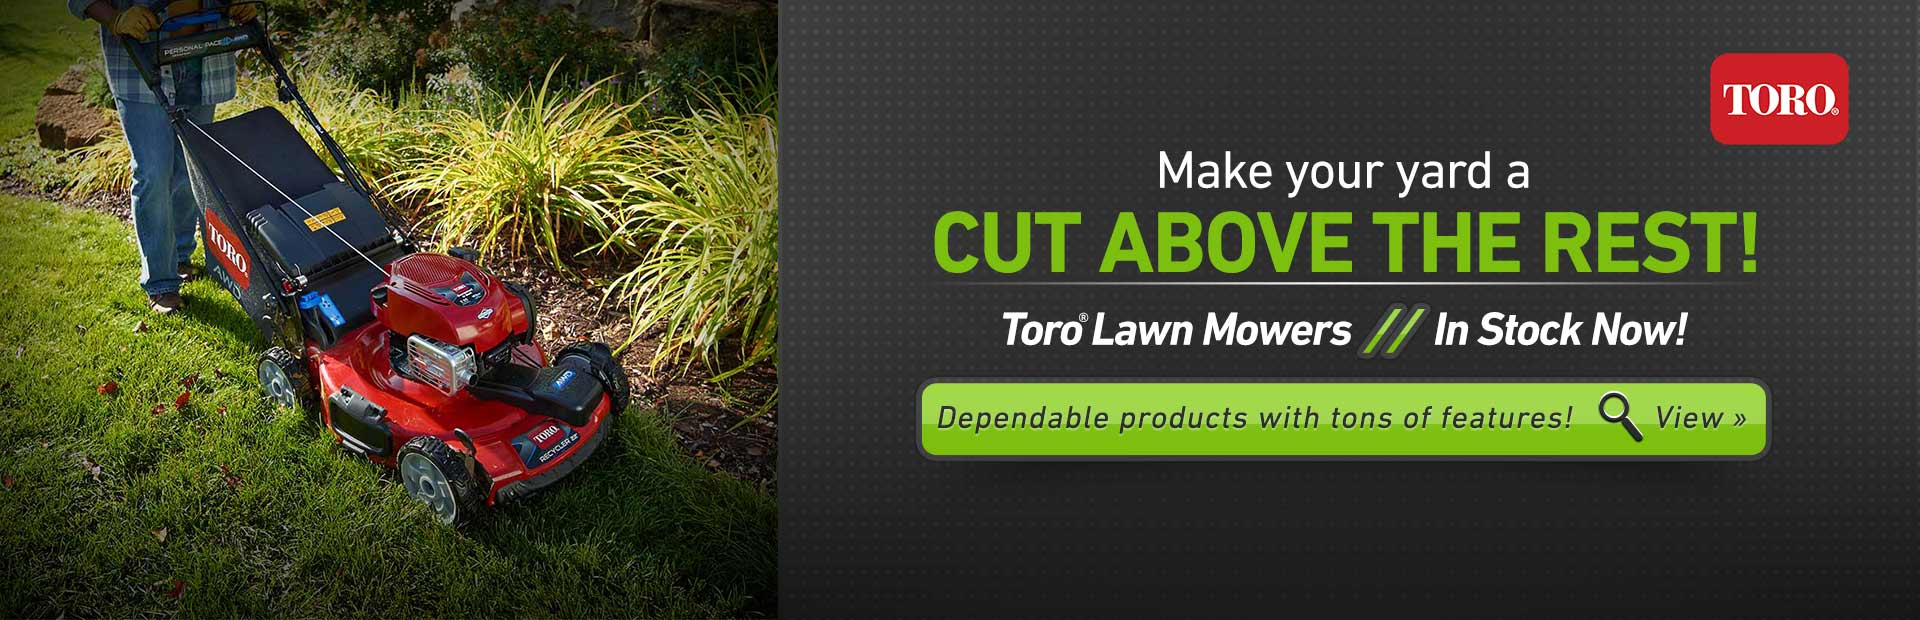 Click here to view Toro lawn mowers.